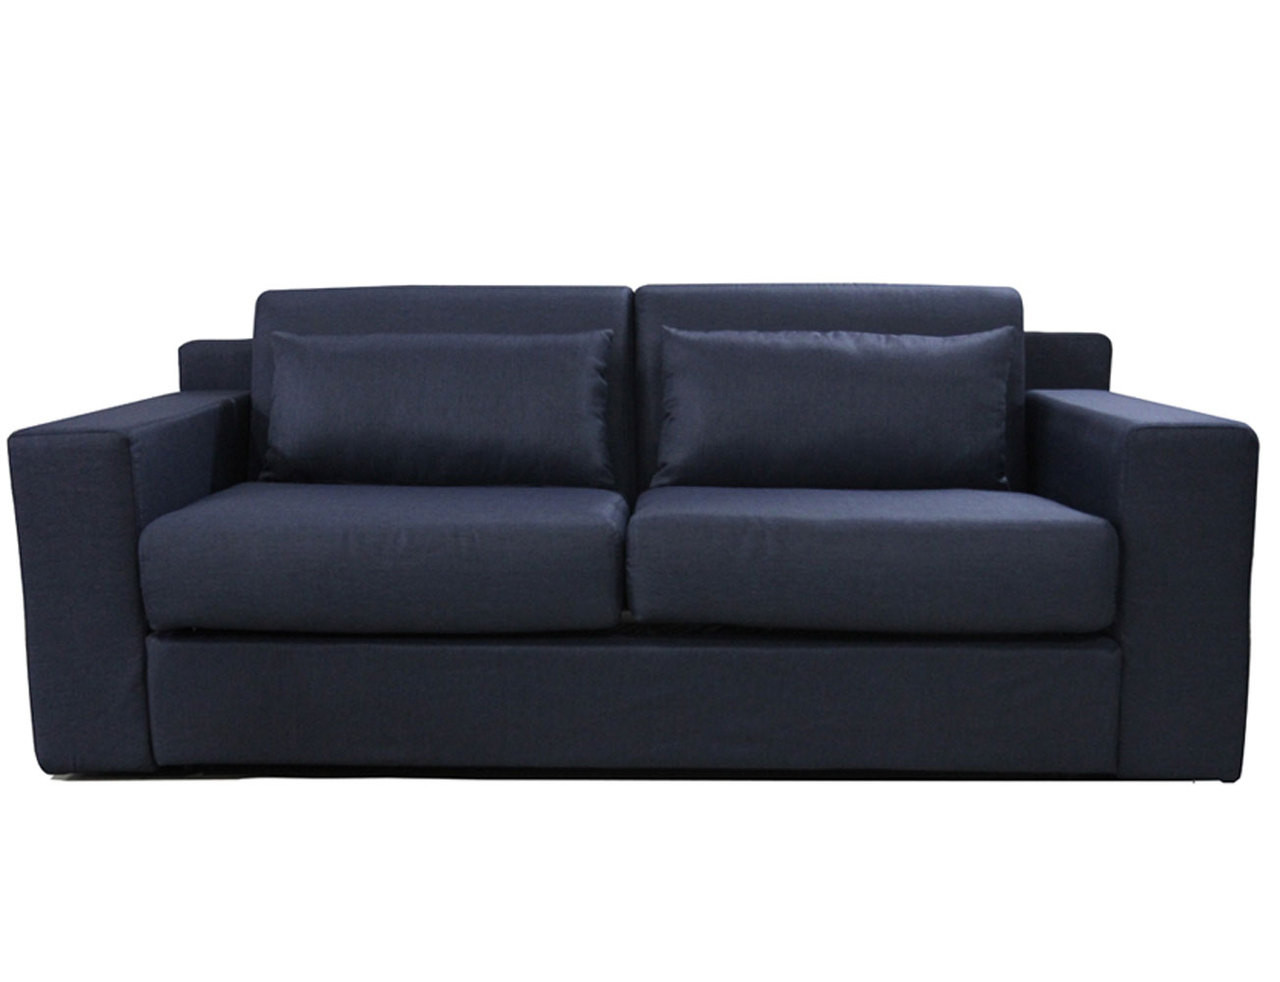 Lunar Pull Out Sofa Bed Dark Blue Online Furniture Bedding Store